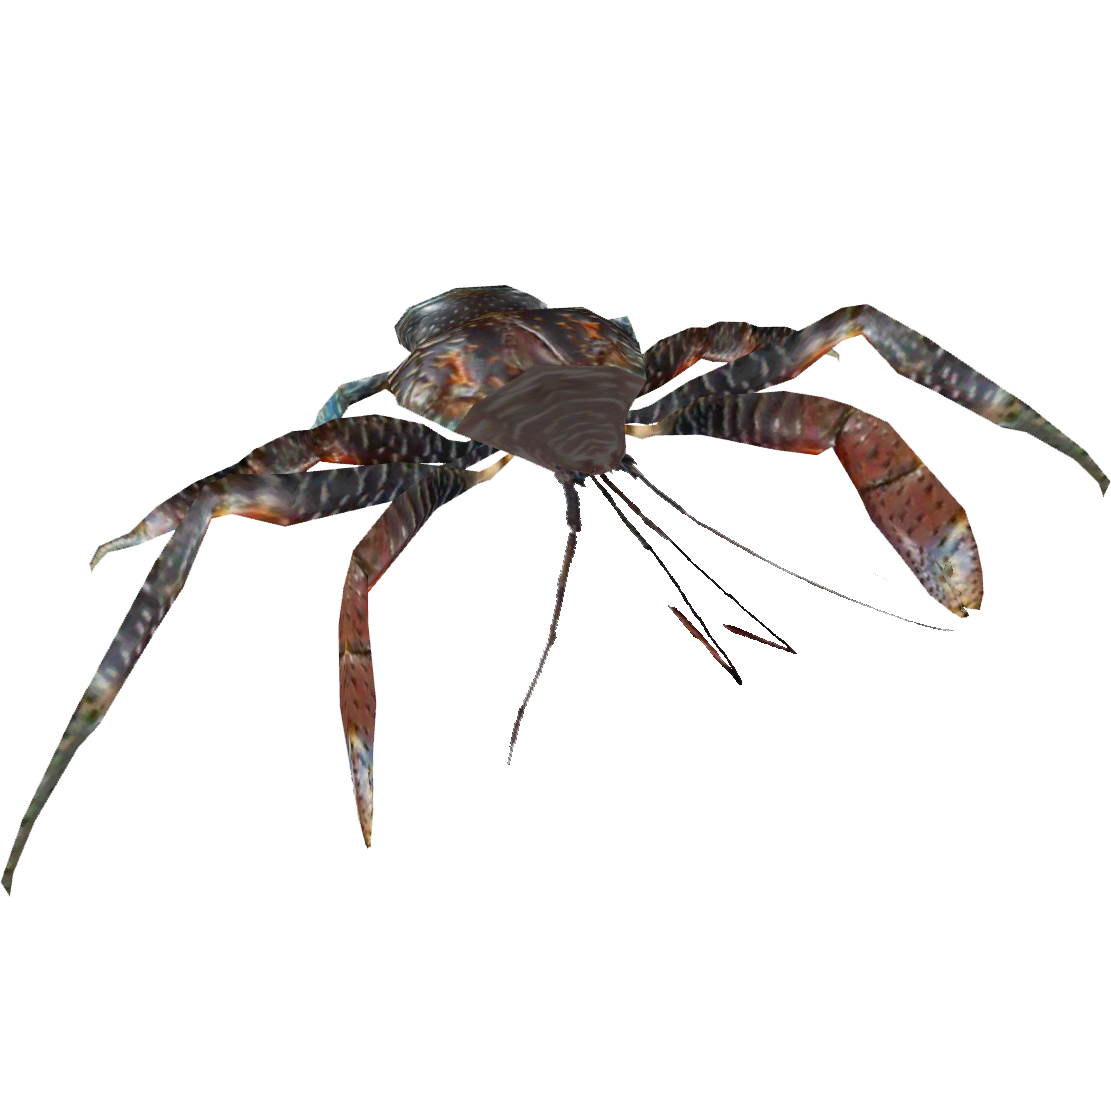 Spider crab png. Coconut whalebite zt download